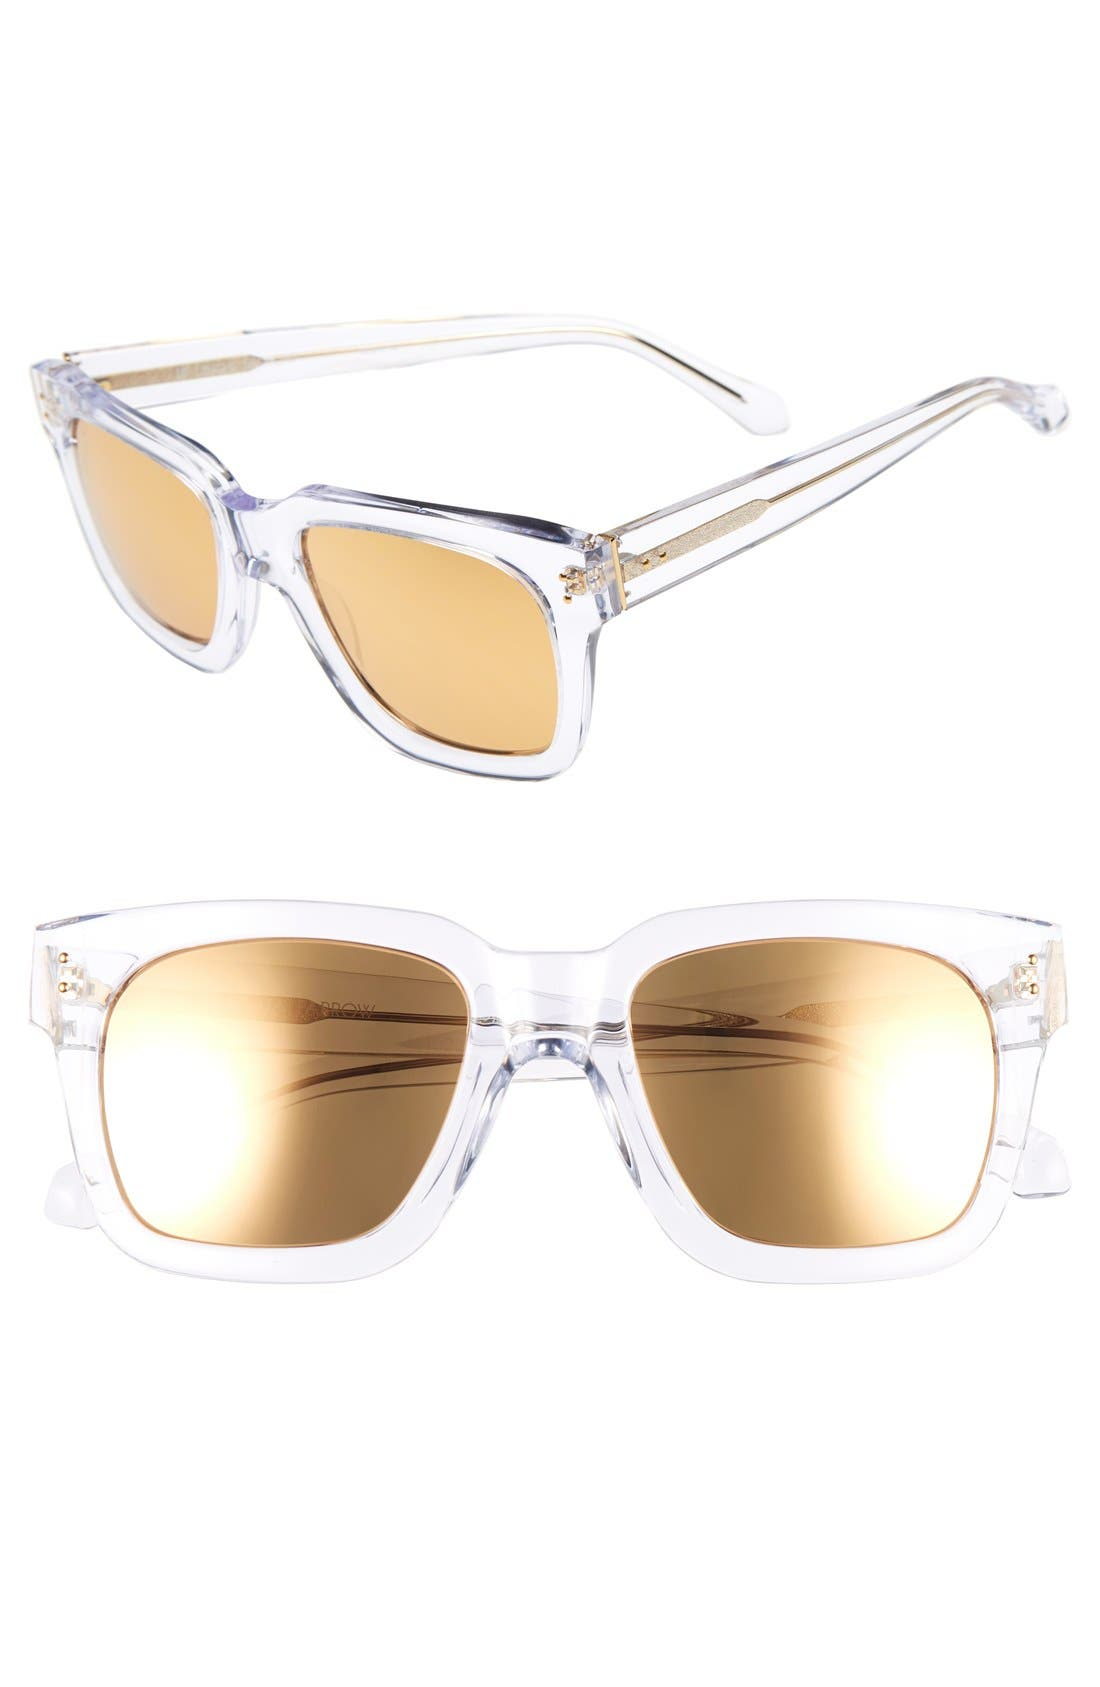 LINDA FARROW 52mm Sunglasses